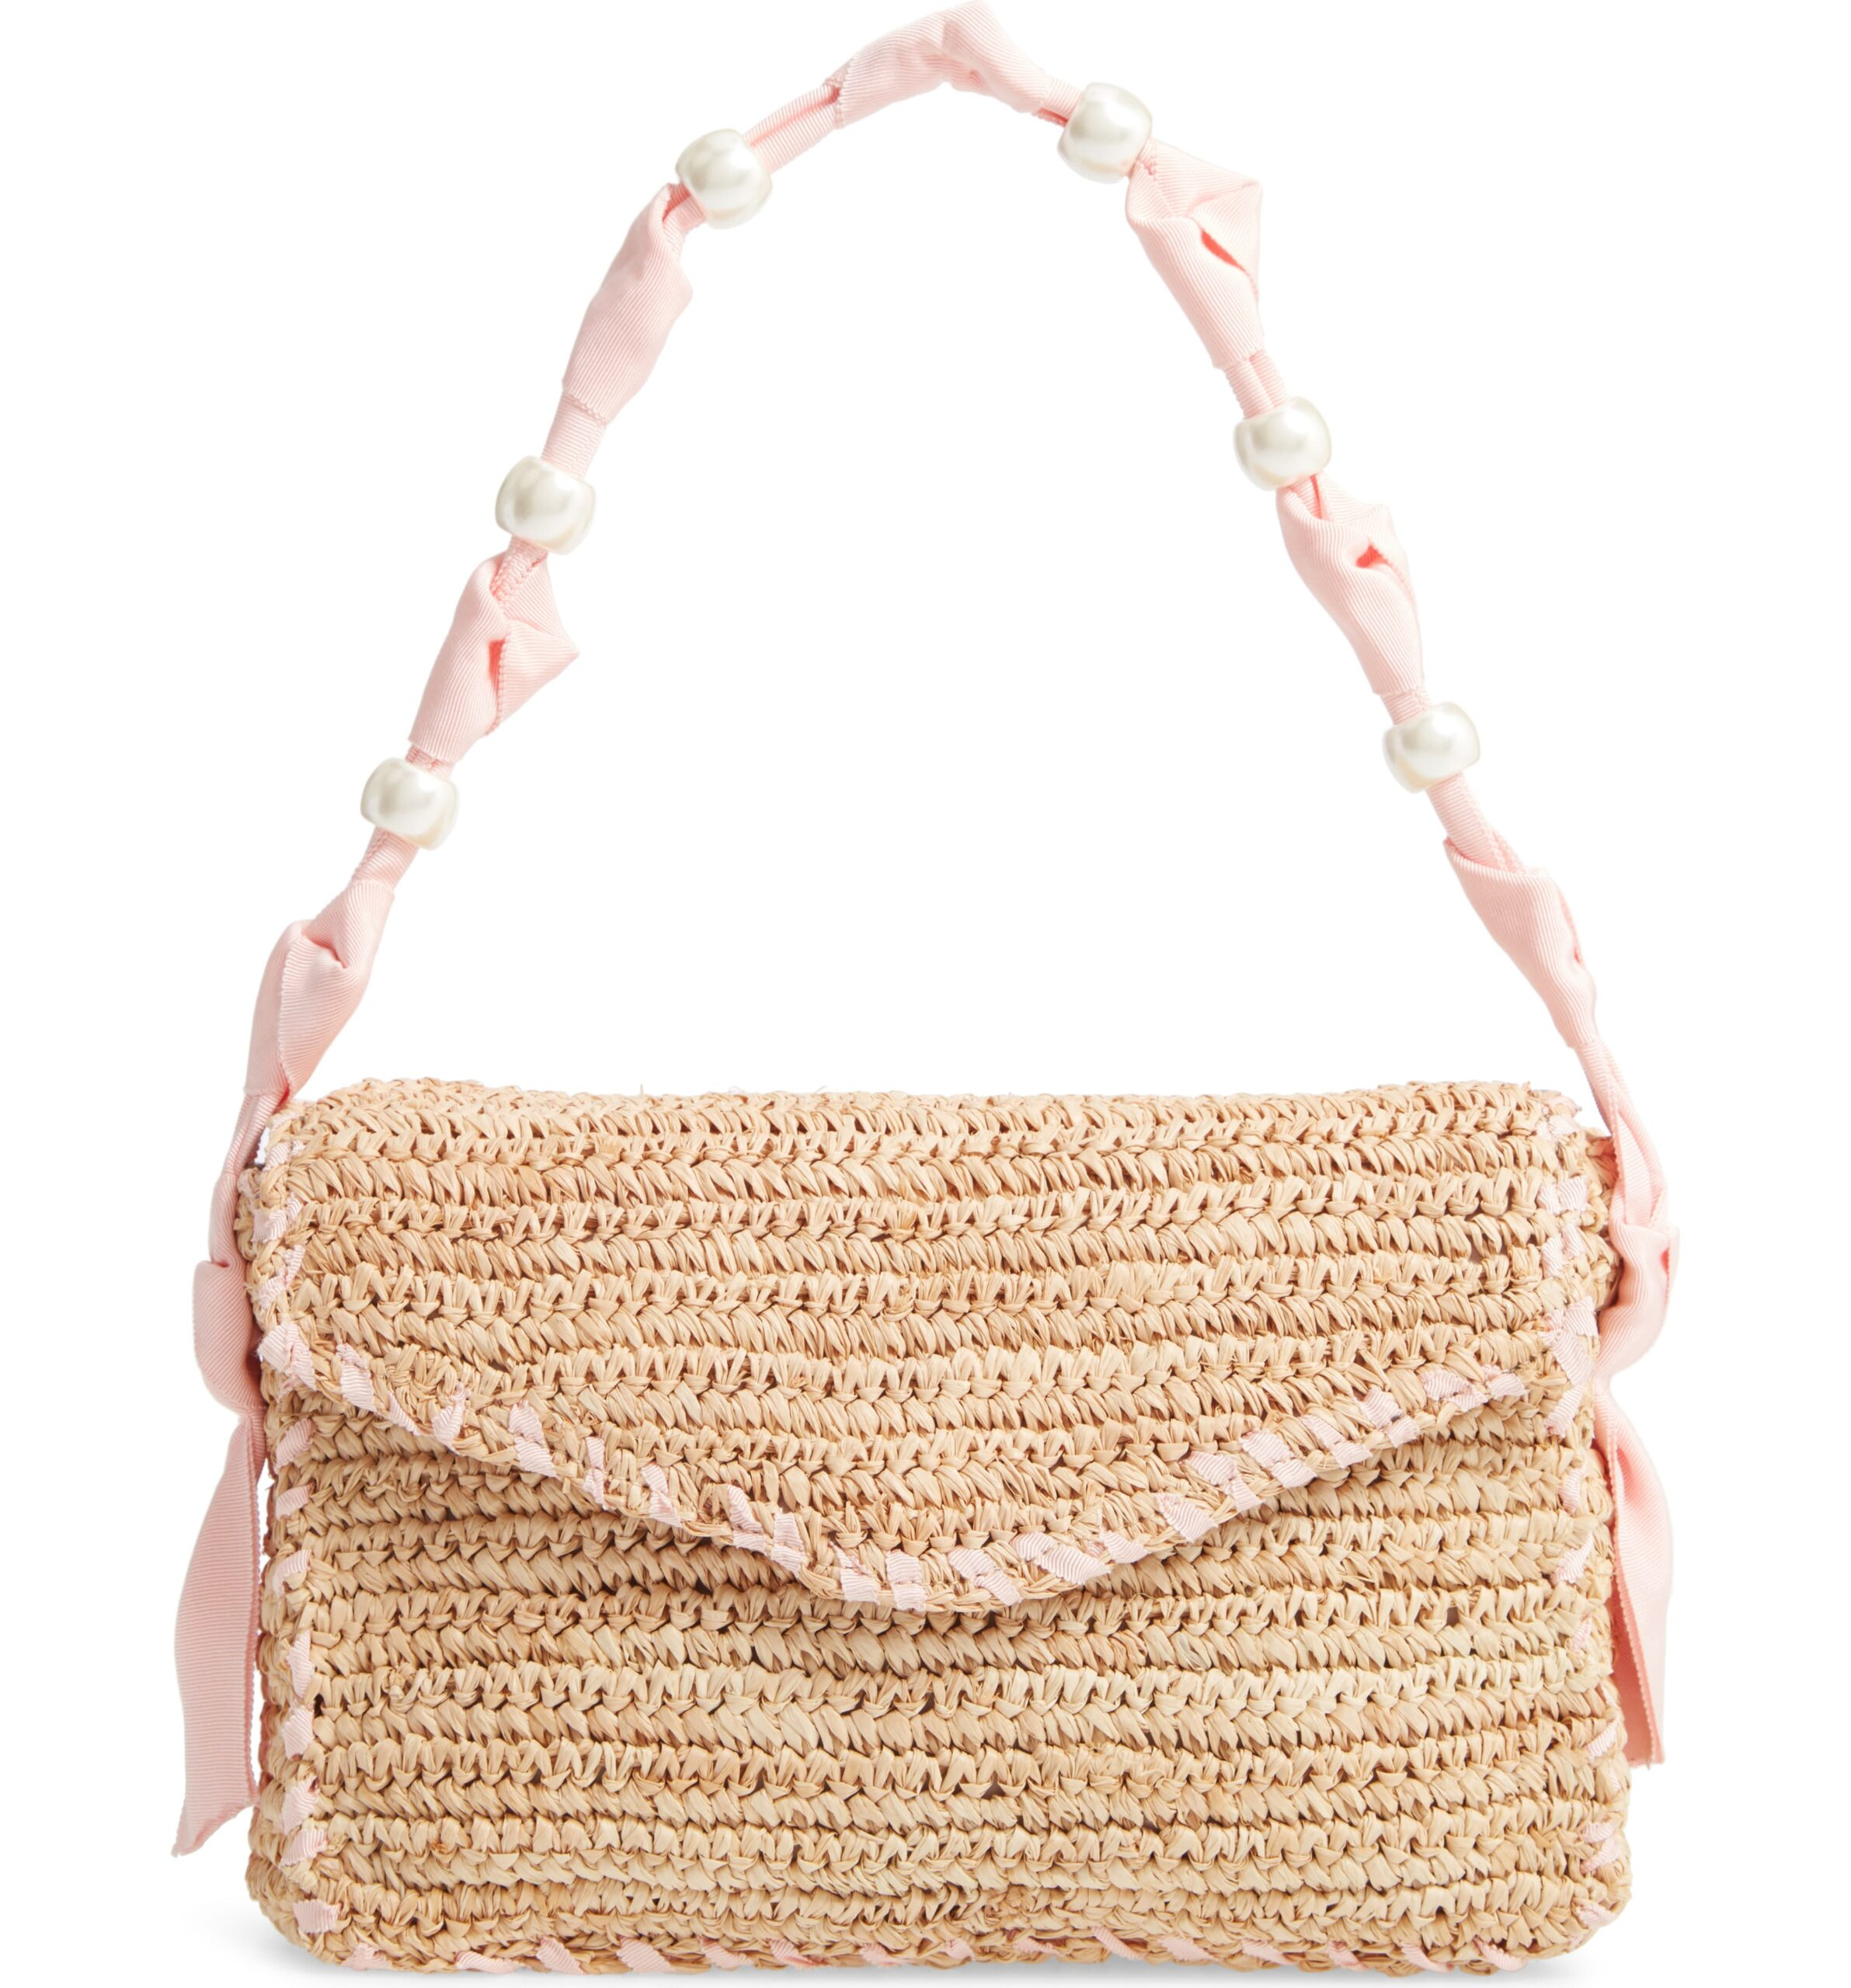 WEEKLY FINDS; including the PAMELA MUNSON Petite Isla Bahia Pearl Woven Shoulder Bag & Cozy Amazon Slippers